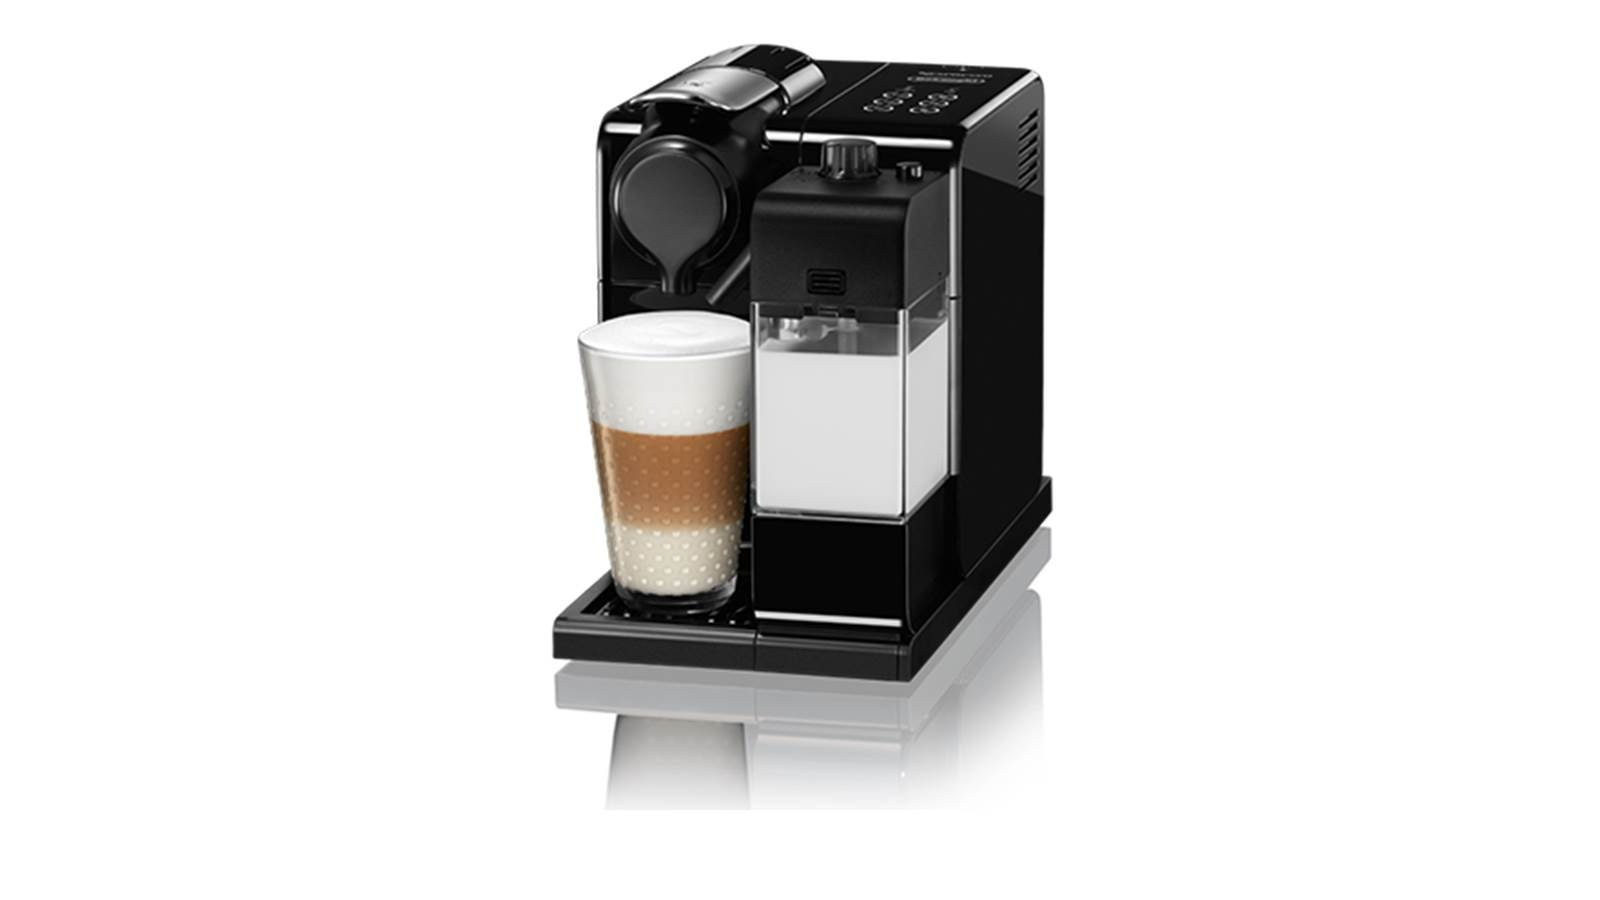 WayCap Ez is a reusable capsule for Nespresso systems that protects the planet, allowing you to stop wasting tons of disposable pods. One that allows you to save up to 1 thousand euros on coffee per year for a family of four.